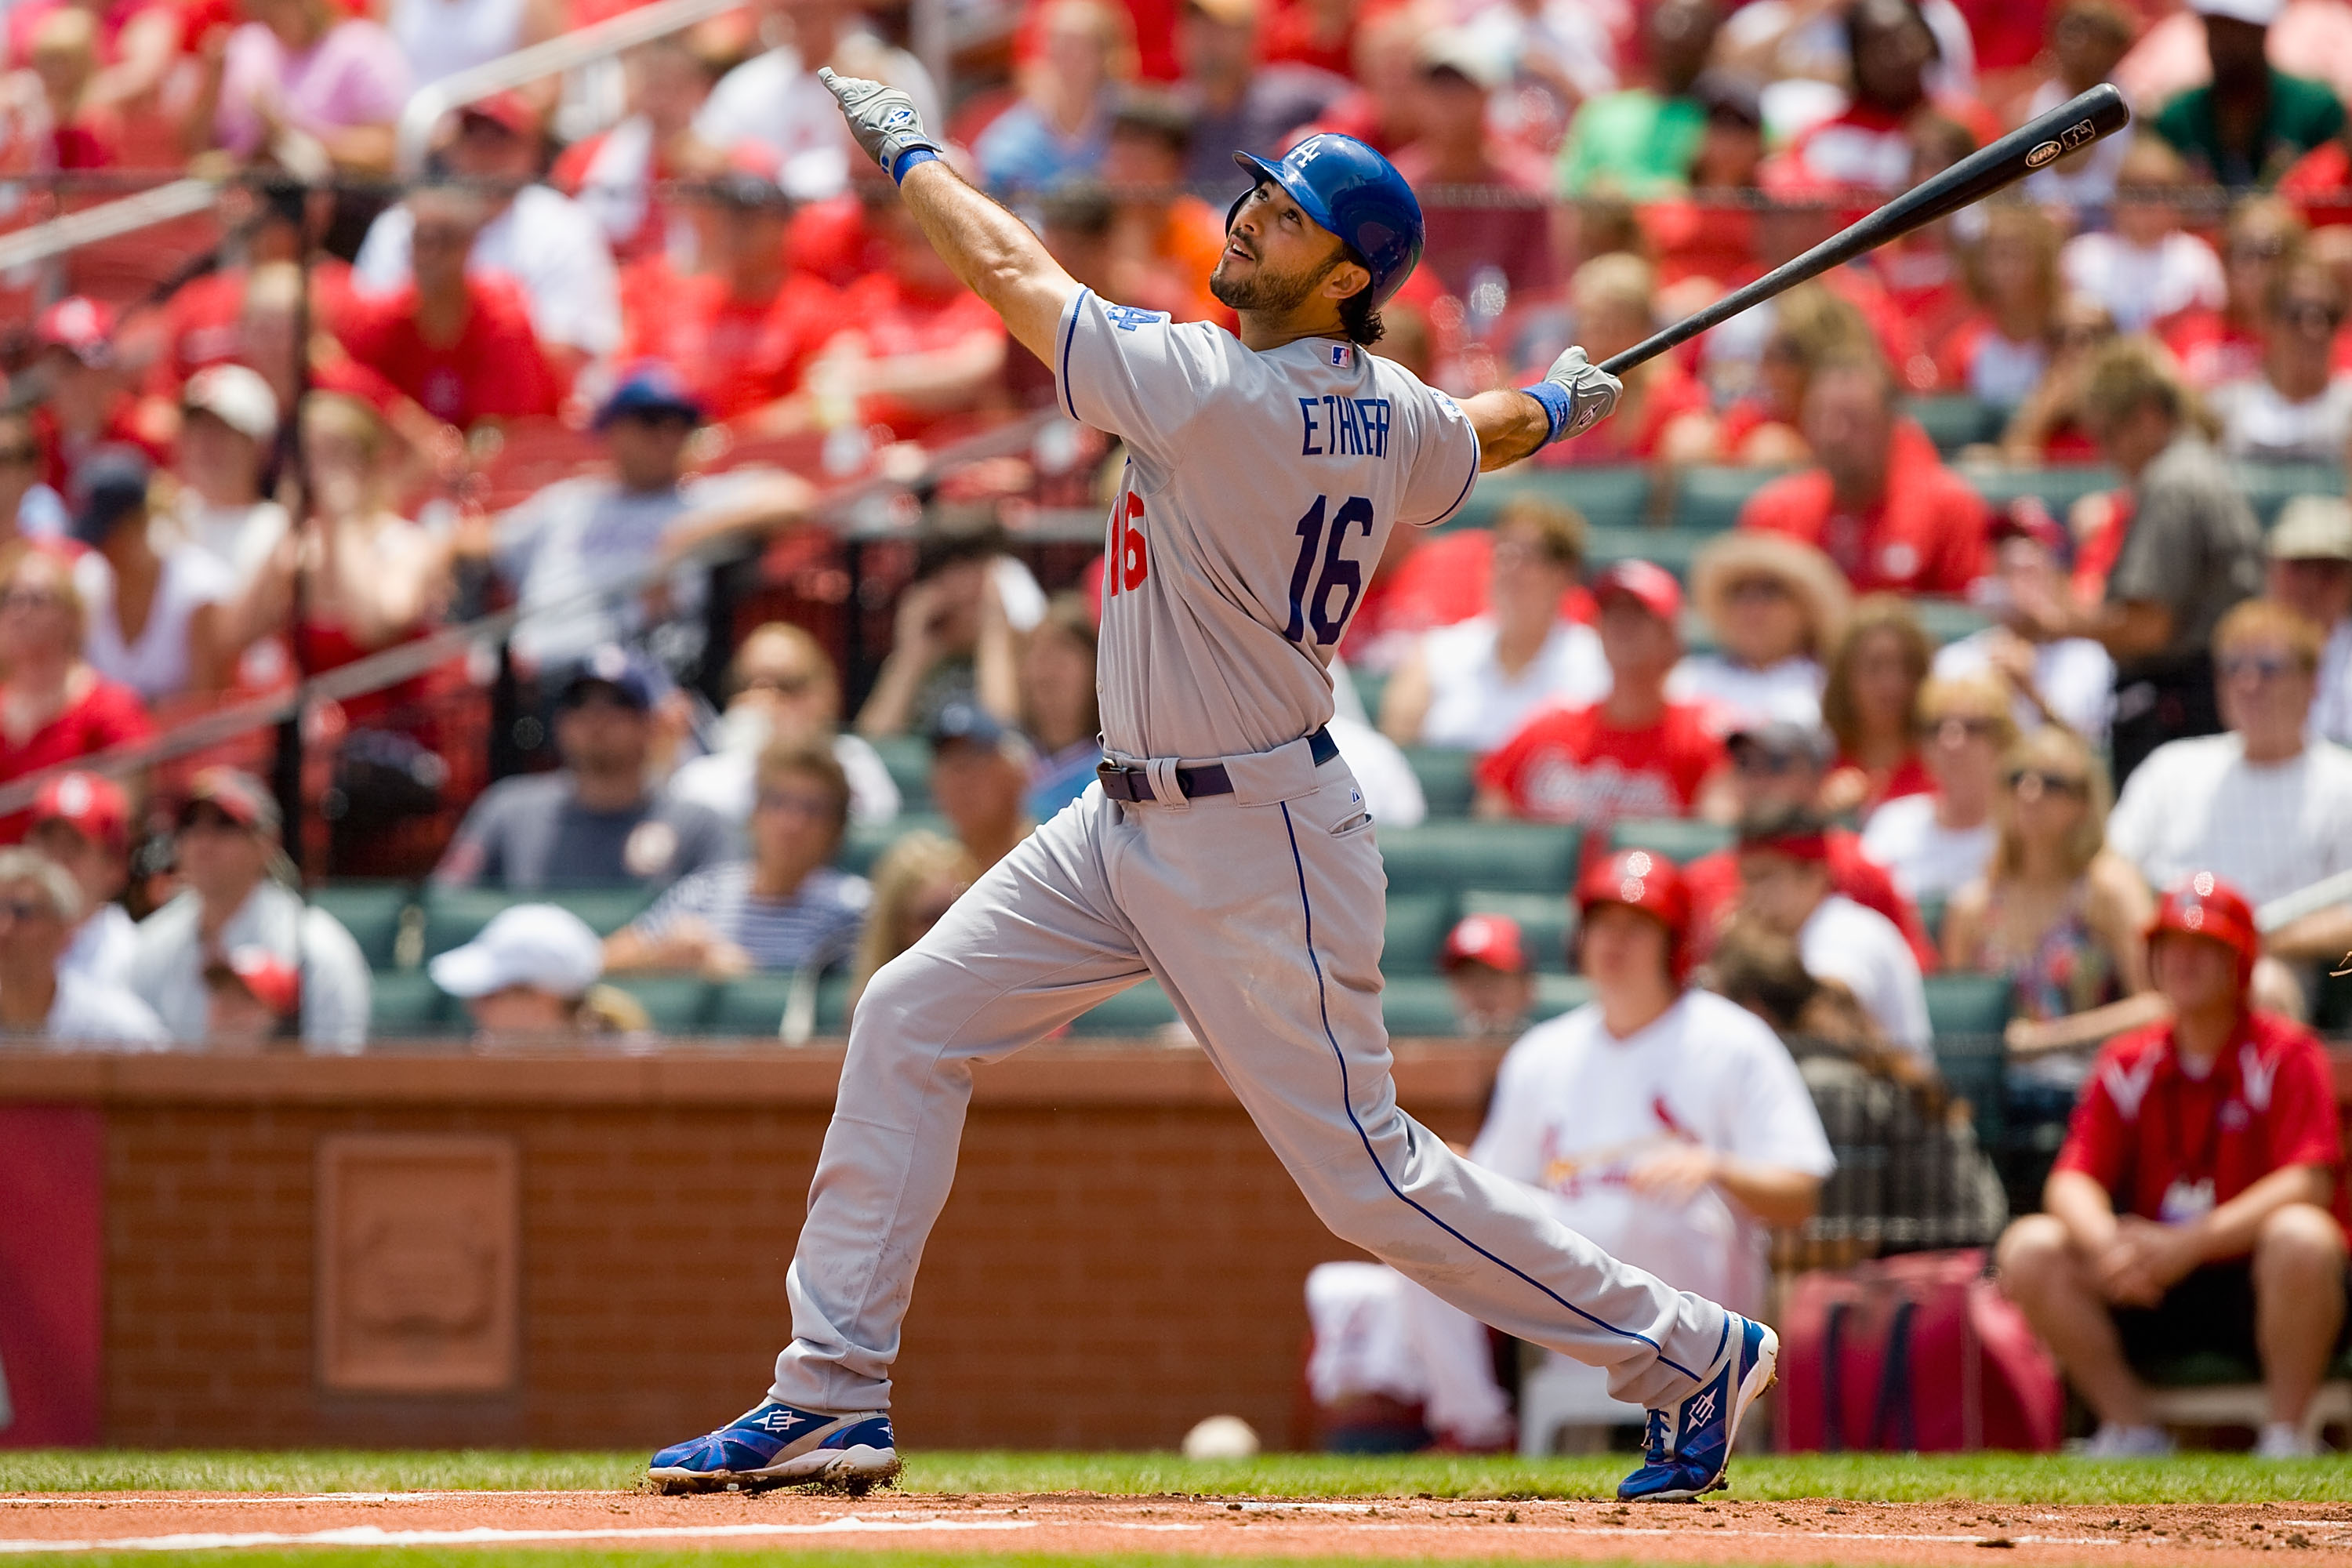 ST. LOUIS - JULY 18: Andre Ethier #16 of the Los Angeles Dodgers in action against the St. Louis Cardinals at Busch Stadium on July 18, 2010 in St. Louis, Missouri.  (Photo by Dilip Vishwanat/Getty Images)